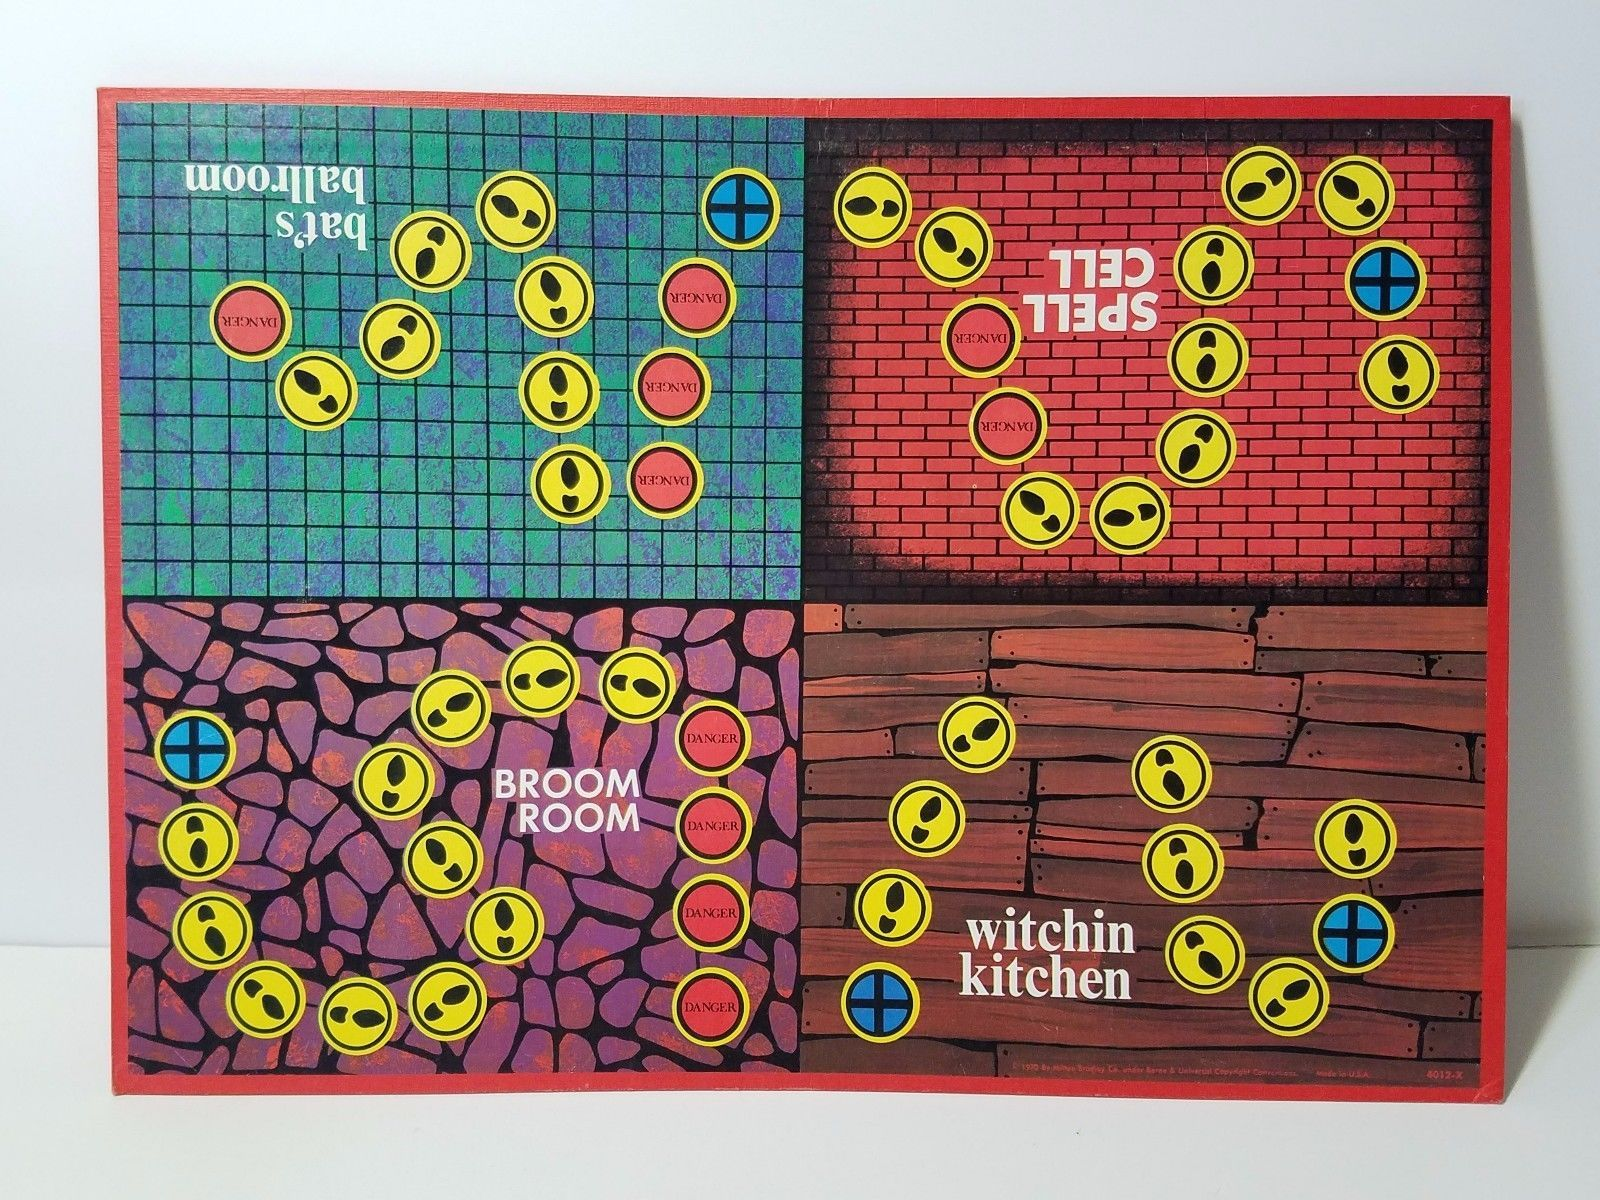 Vintage Milton Bradley Which Witch Board Game Complete 1971 Halloween 3D #4012 in Toys & Hobbies, Games, Board & Traditional Games, Vintage Manufacture | eBay